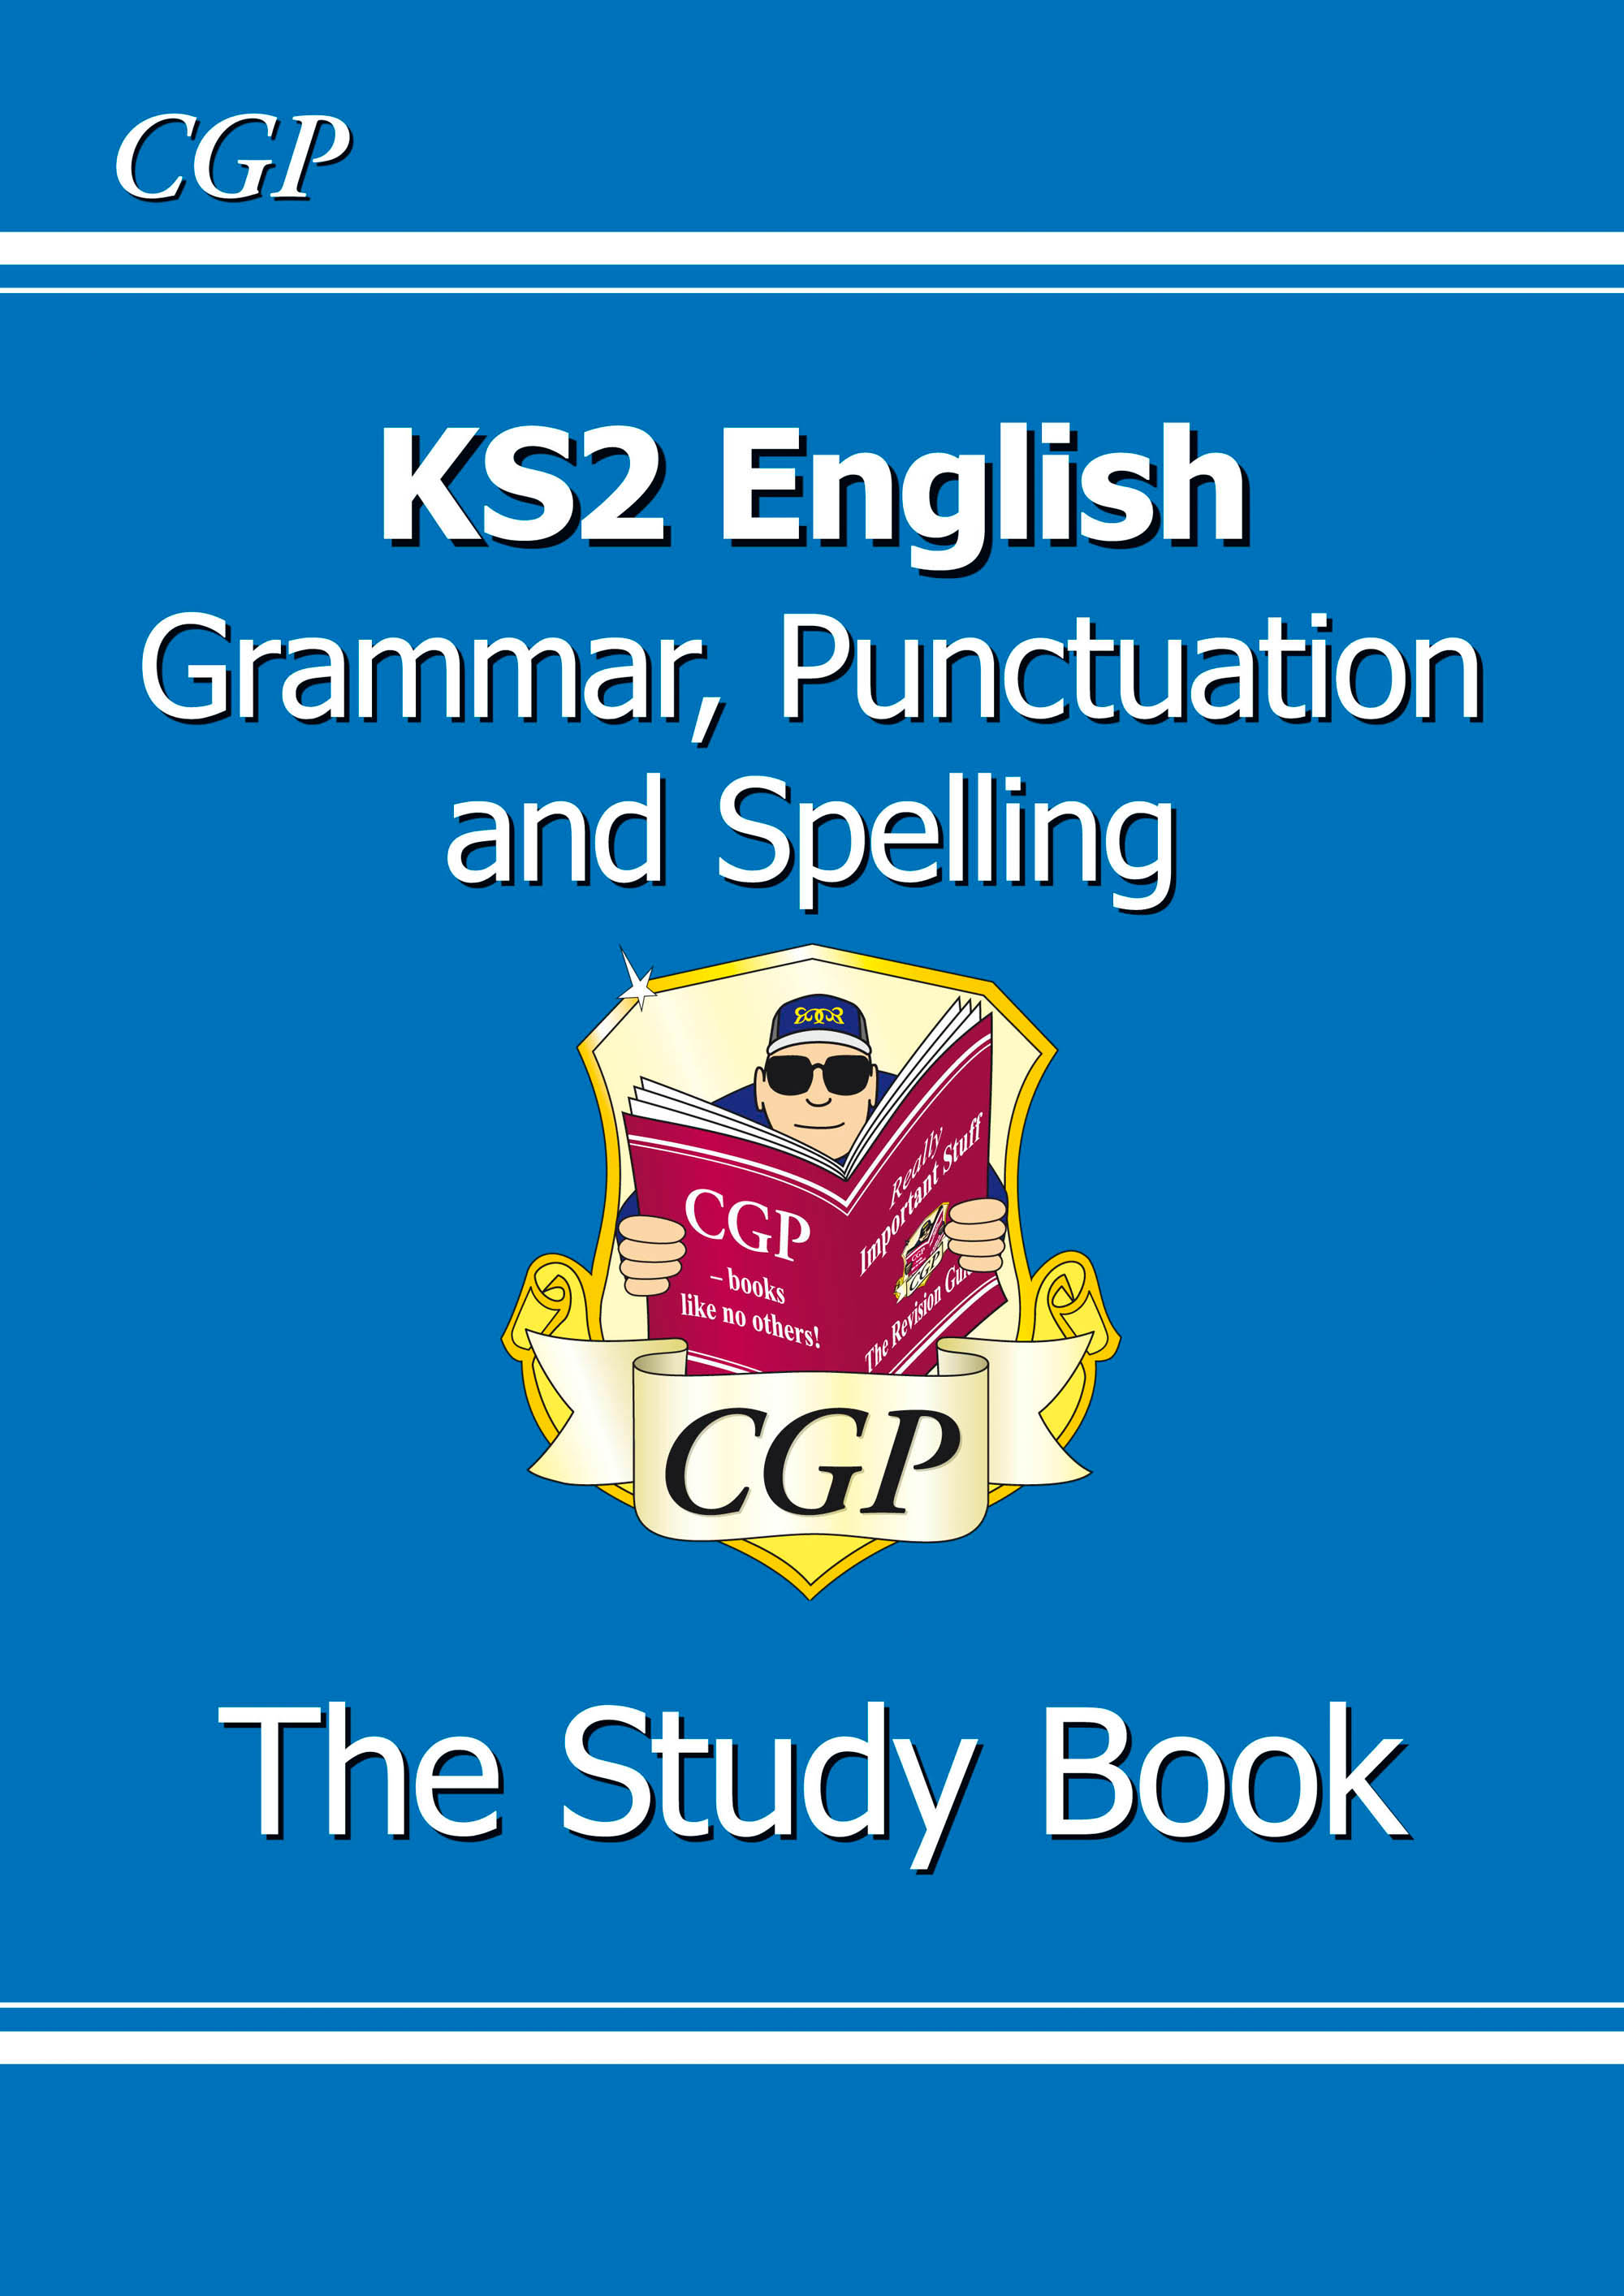 EGR23DK - KS2 English: Grammar, Punctuation and Spelling Study Book (for tests in 2018 and beyond)